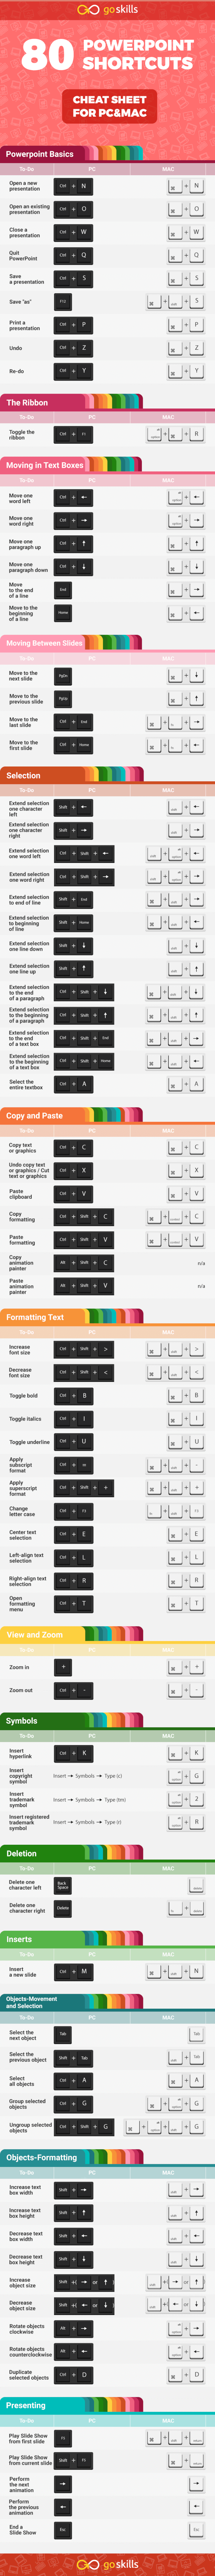 powerpoint-shortcuts-infographic-goskills